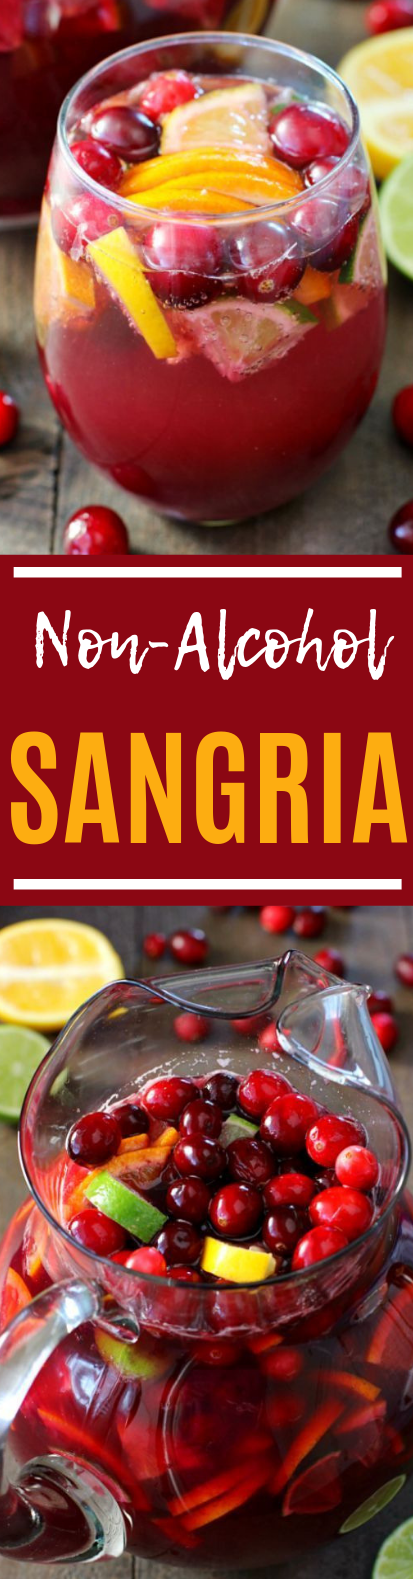 Non-Alcoholic Sangria #party #drinks